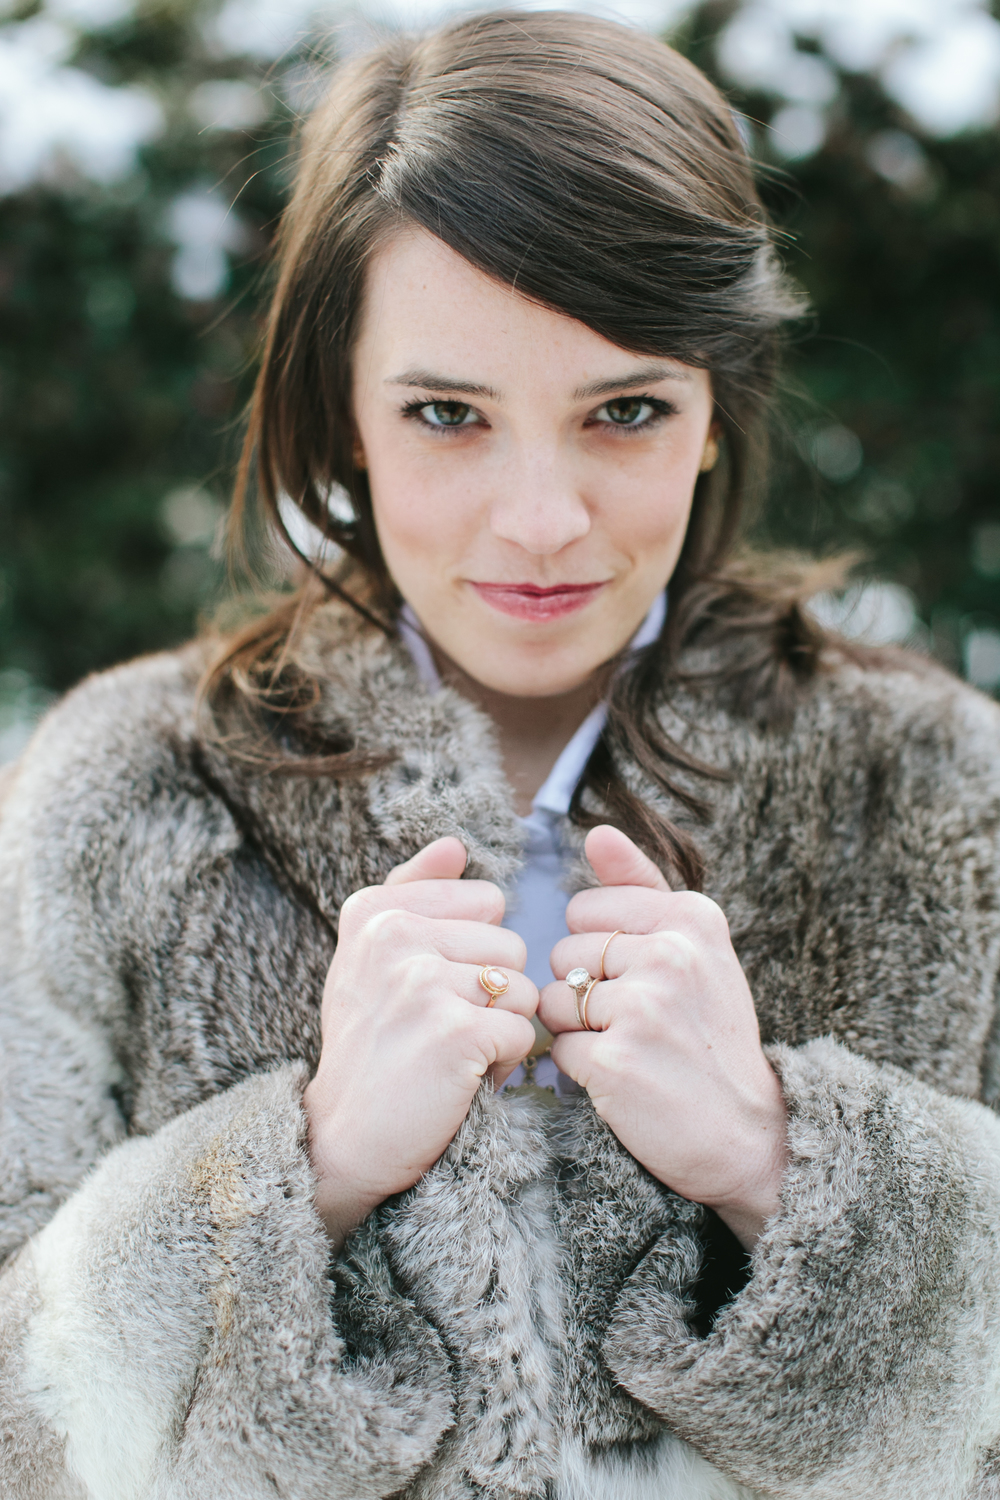 Atlanta-Fashion-Photographer-Kathryn-McCrary-Photography-Snow-Snowlanta-Fur-Coat-1.jpg